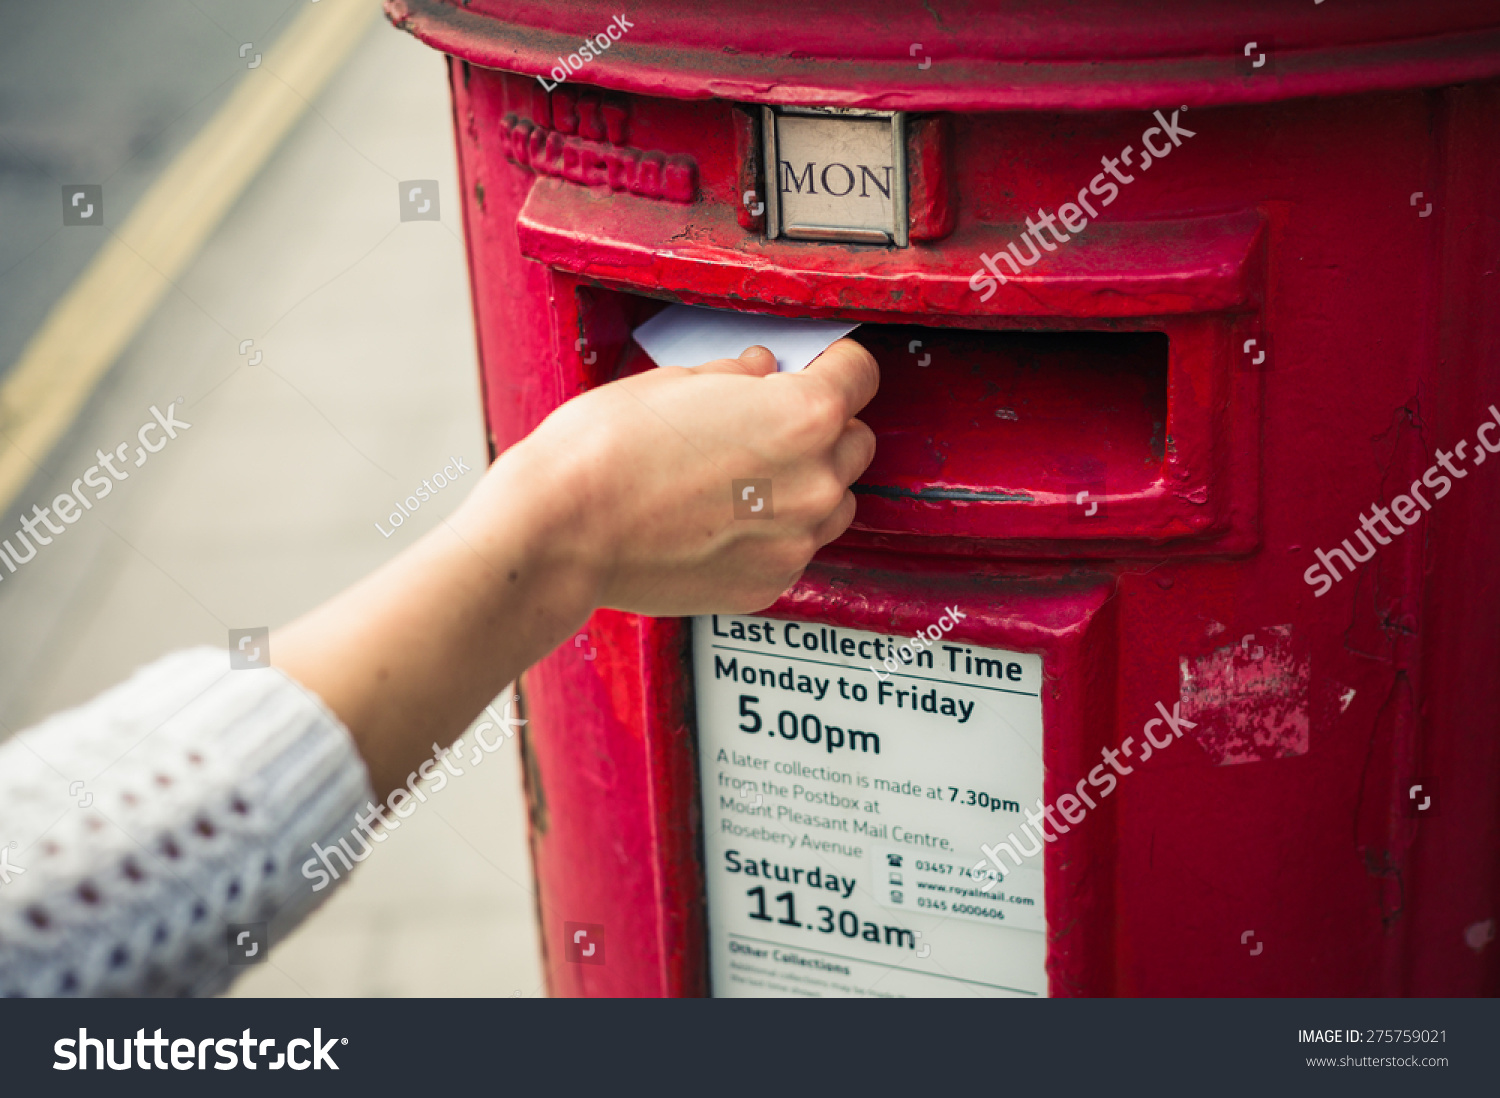 royal mail essay Privatisation of royal mail essay business ethics are the standards of conduct according to which business decisions are made [jones and pollitt (1998, p5)] so much has been said about the royal mail.